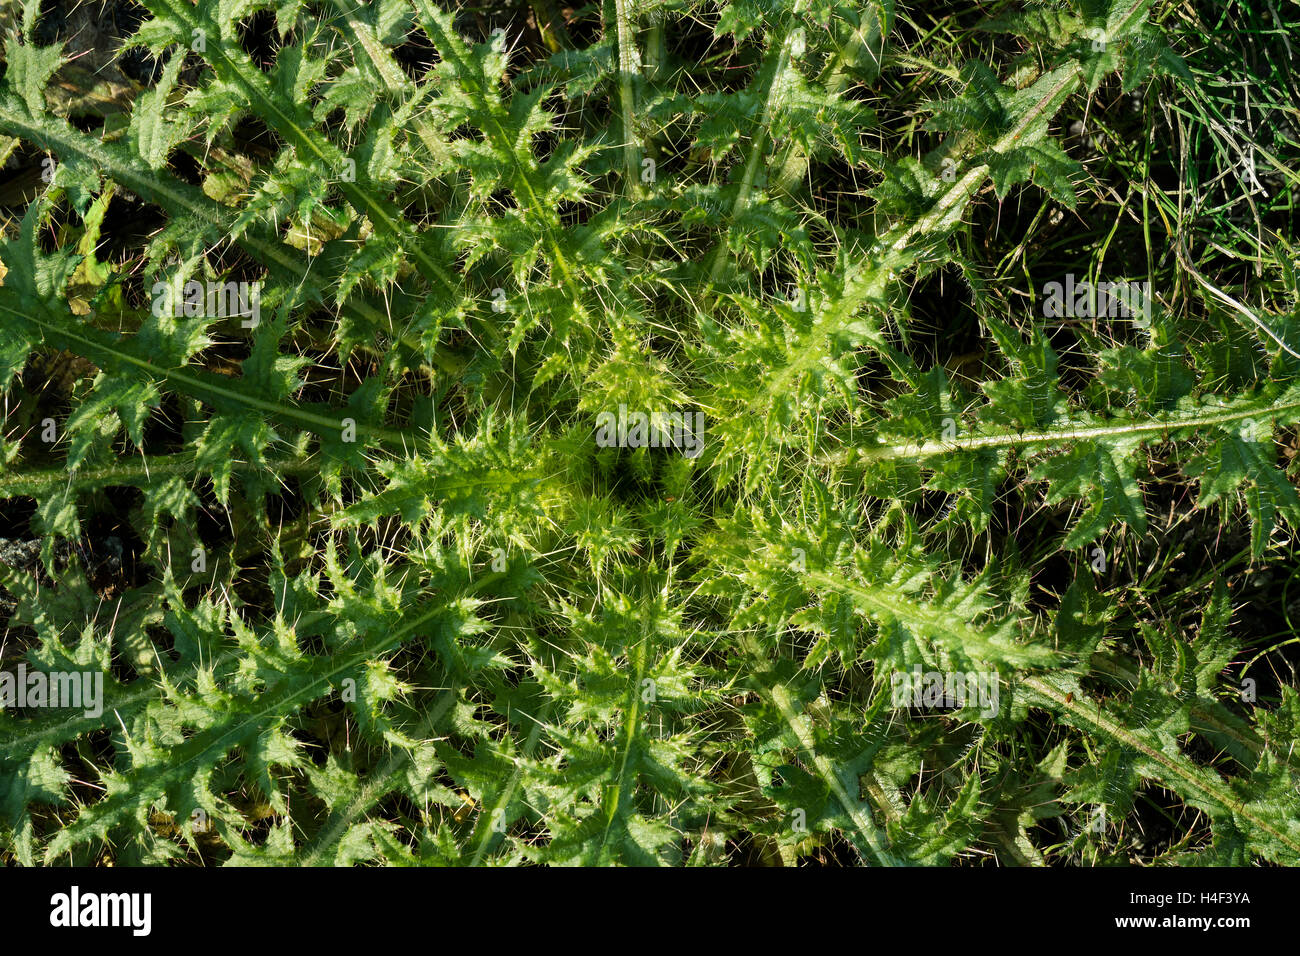 Leaf rosette of a spear thistle,  Cirsium vulgare - Stock Image